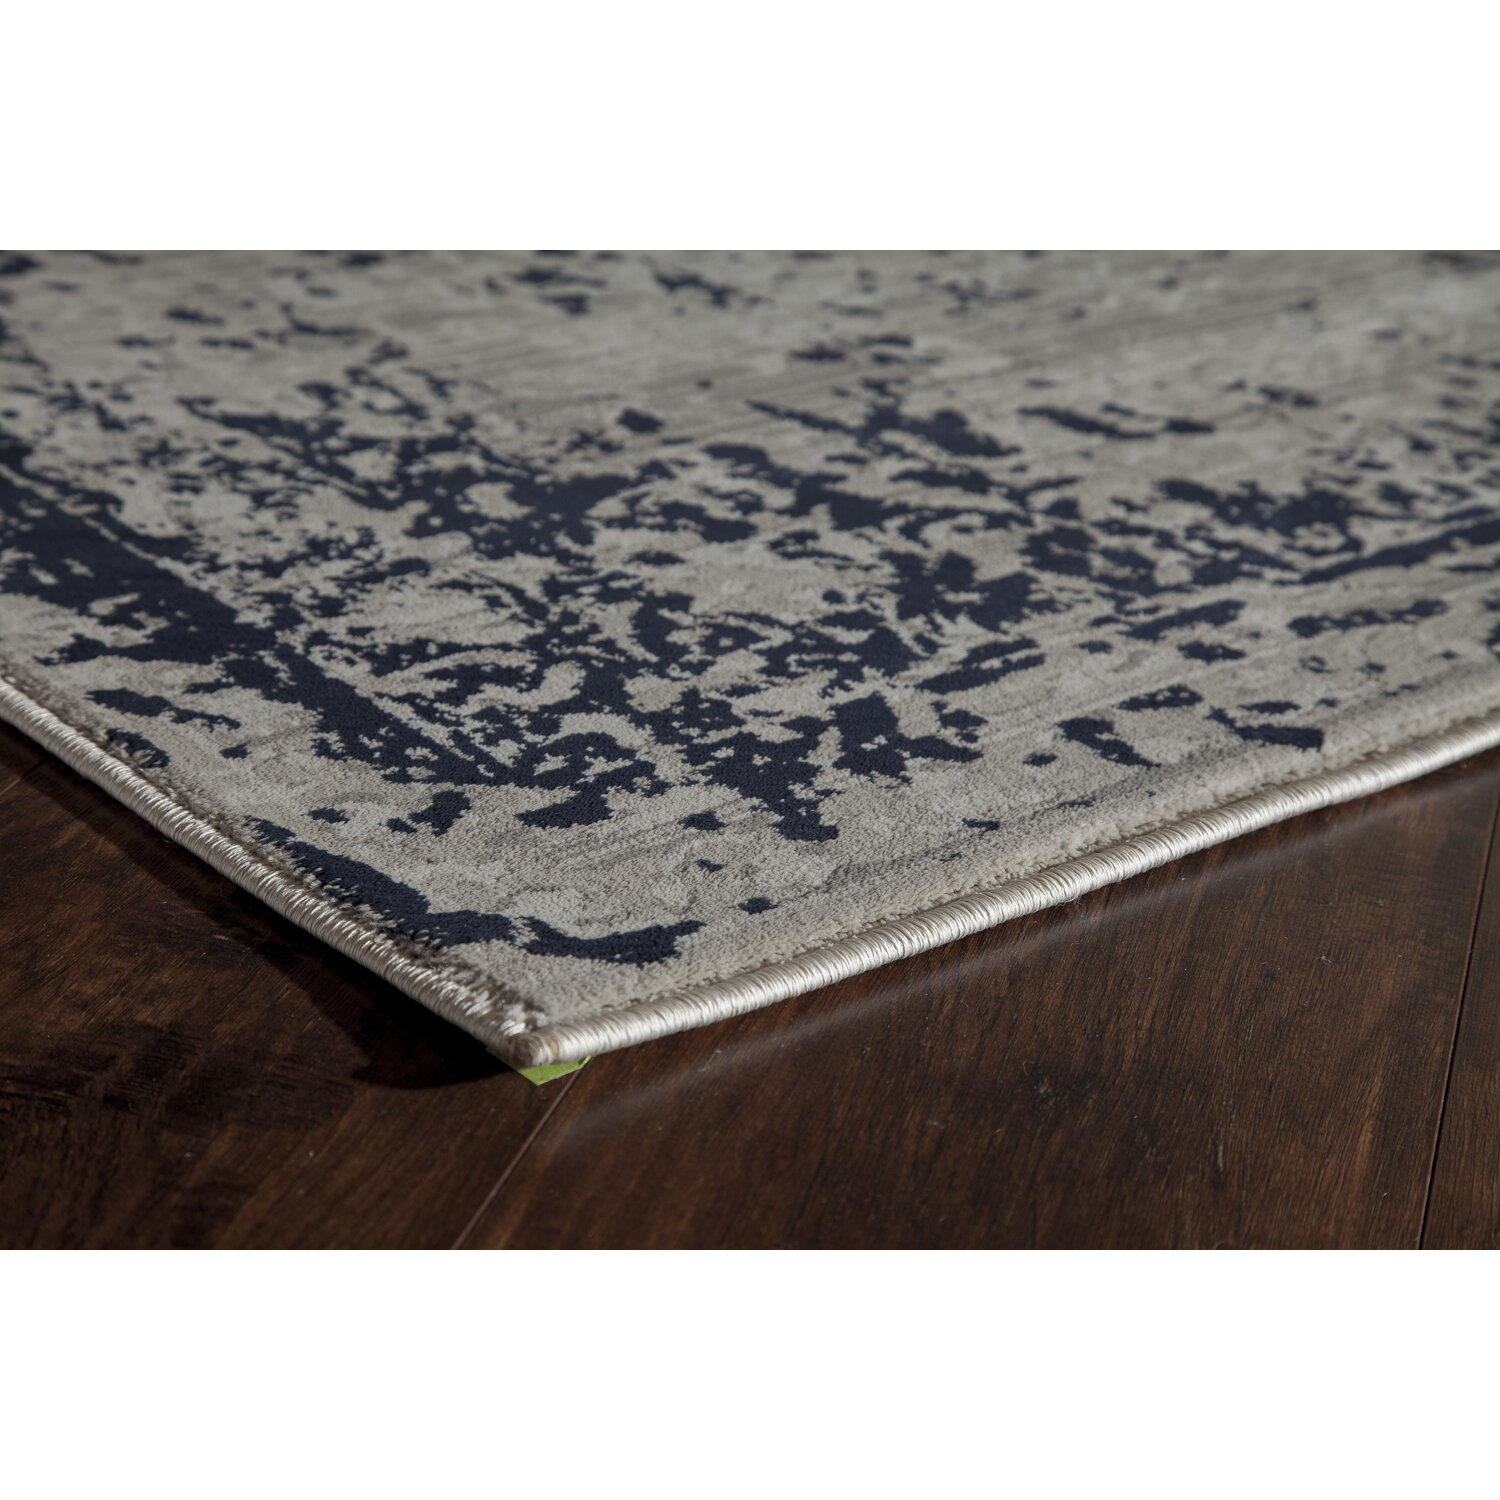 the conestoga trading co navy blue white area rug reviews. Black Bedroom Furniture Sets. Home Design Ideas